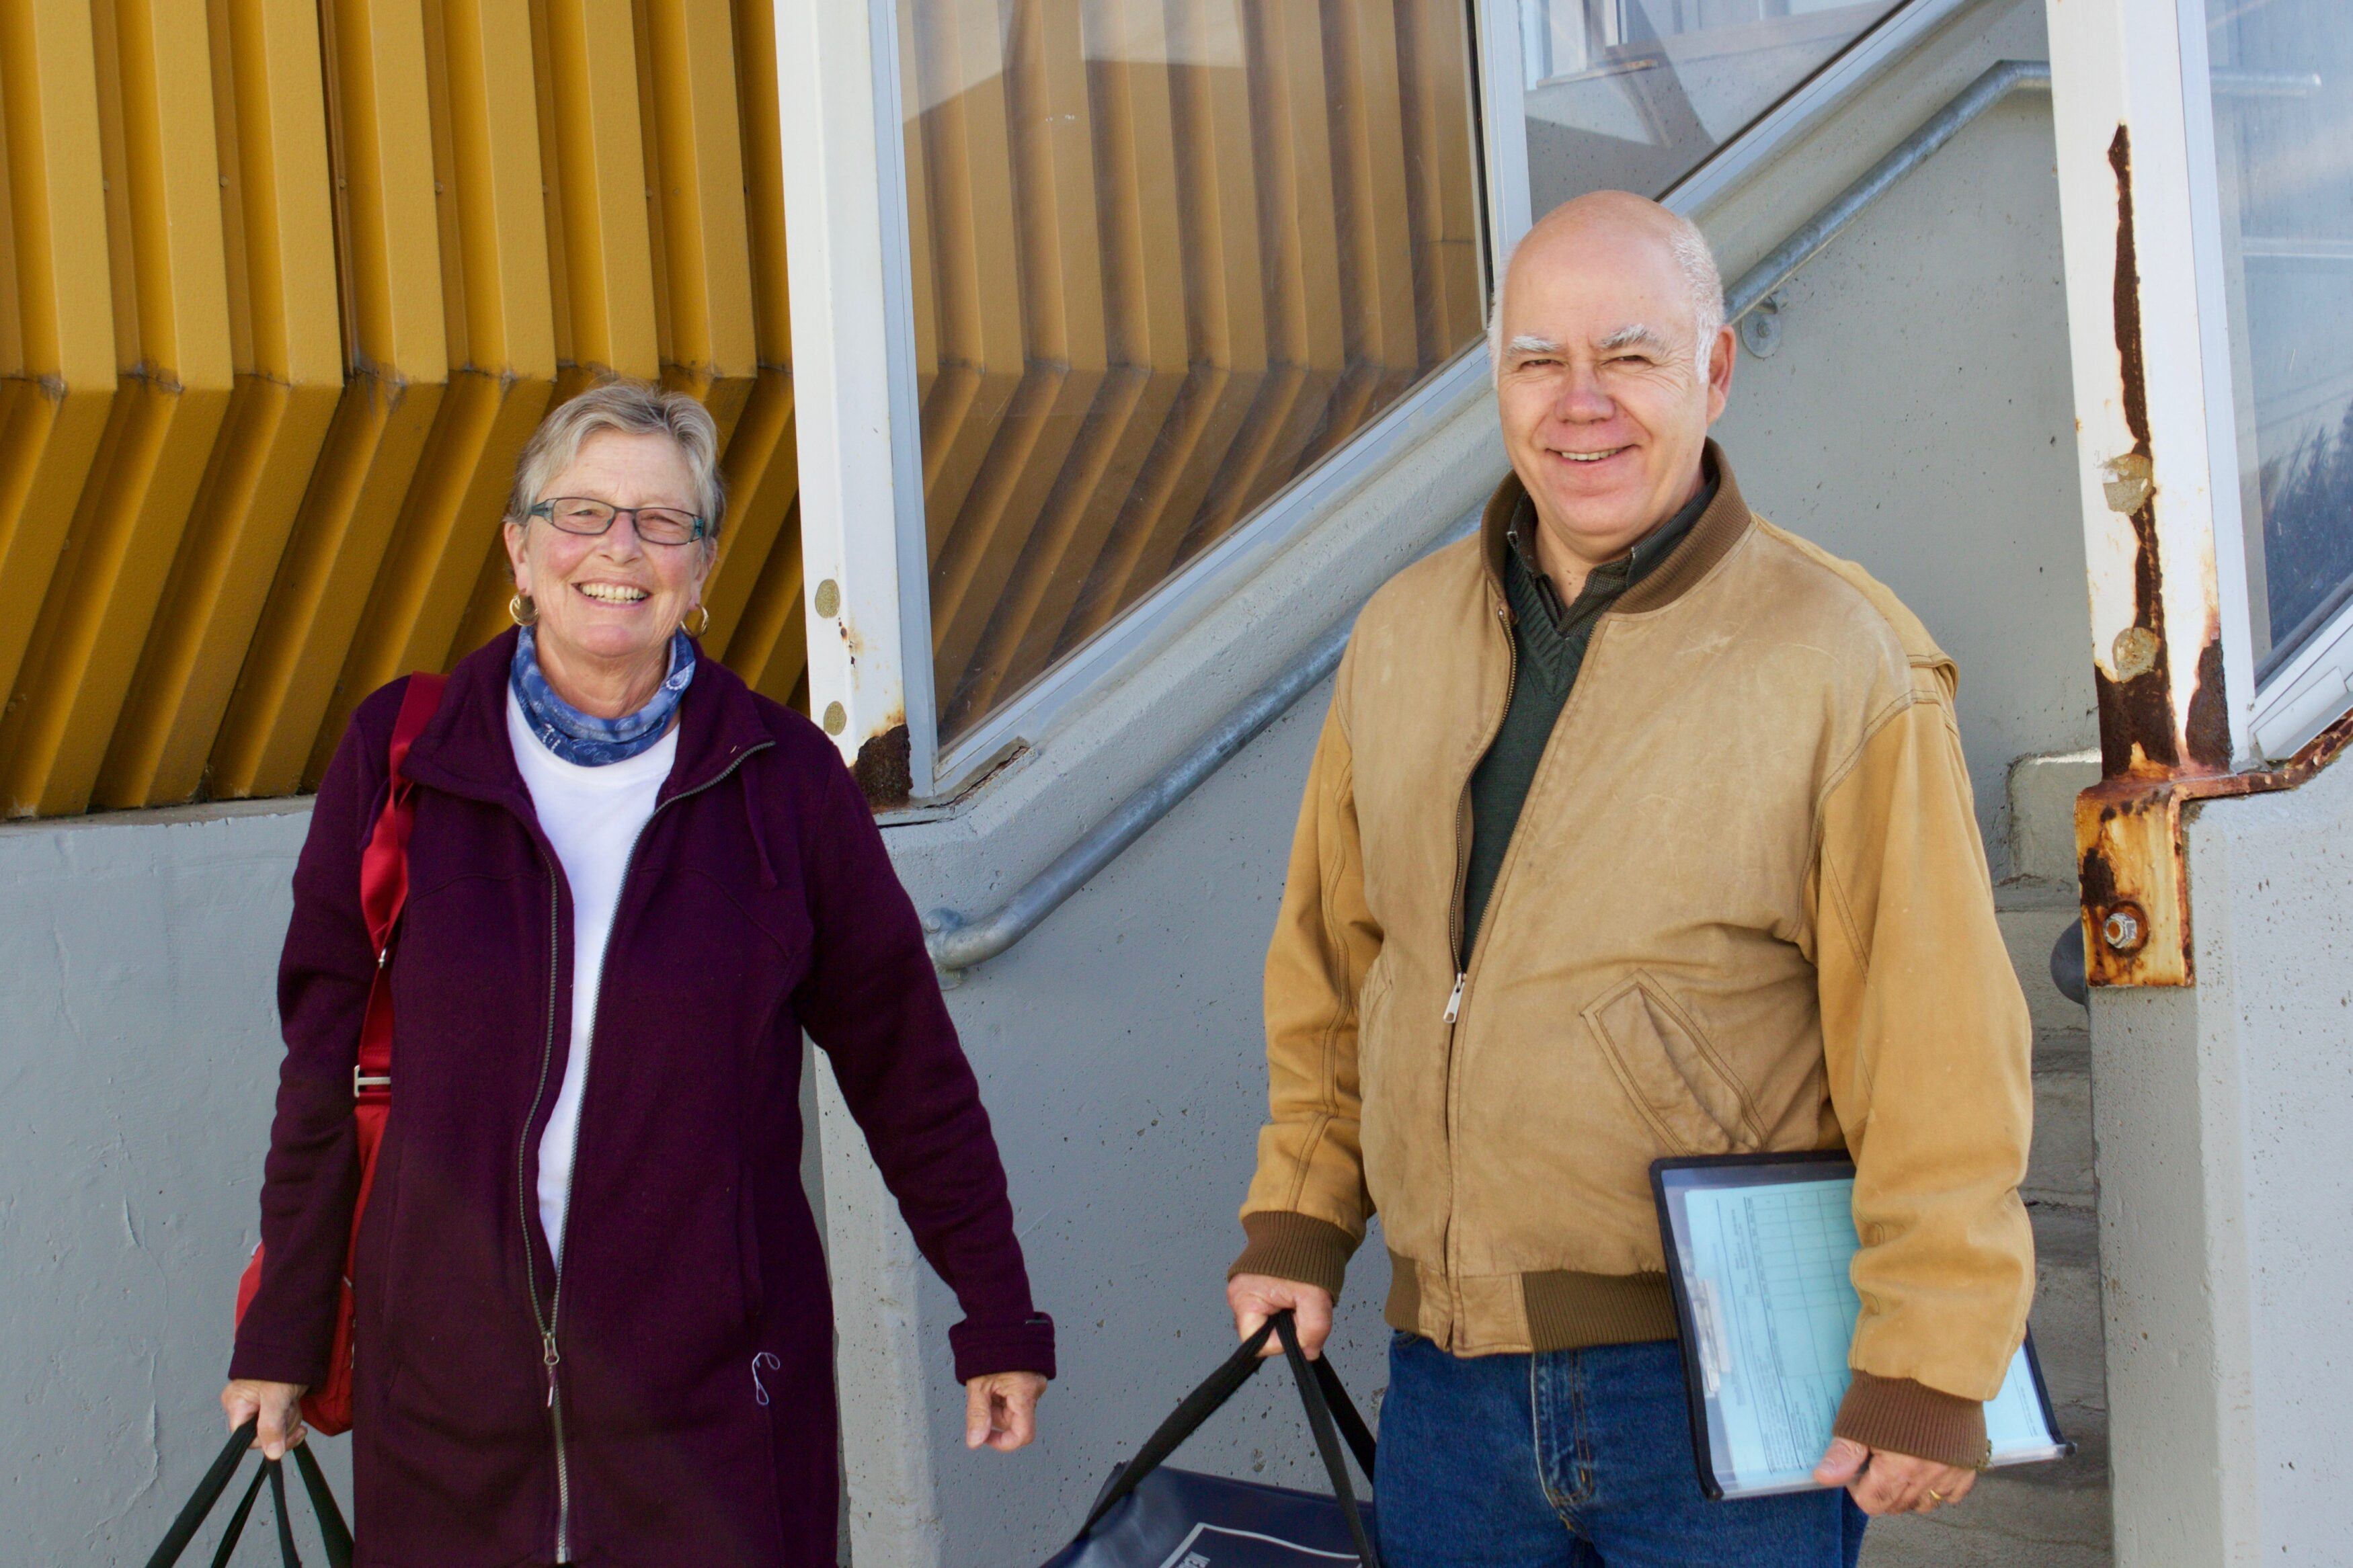 Meals on Wheels, brought to your door by your MLA